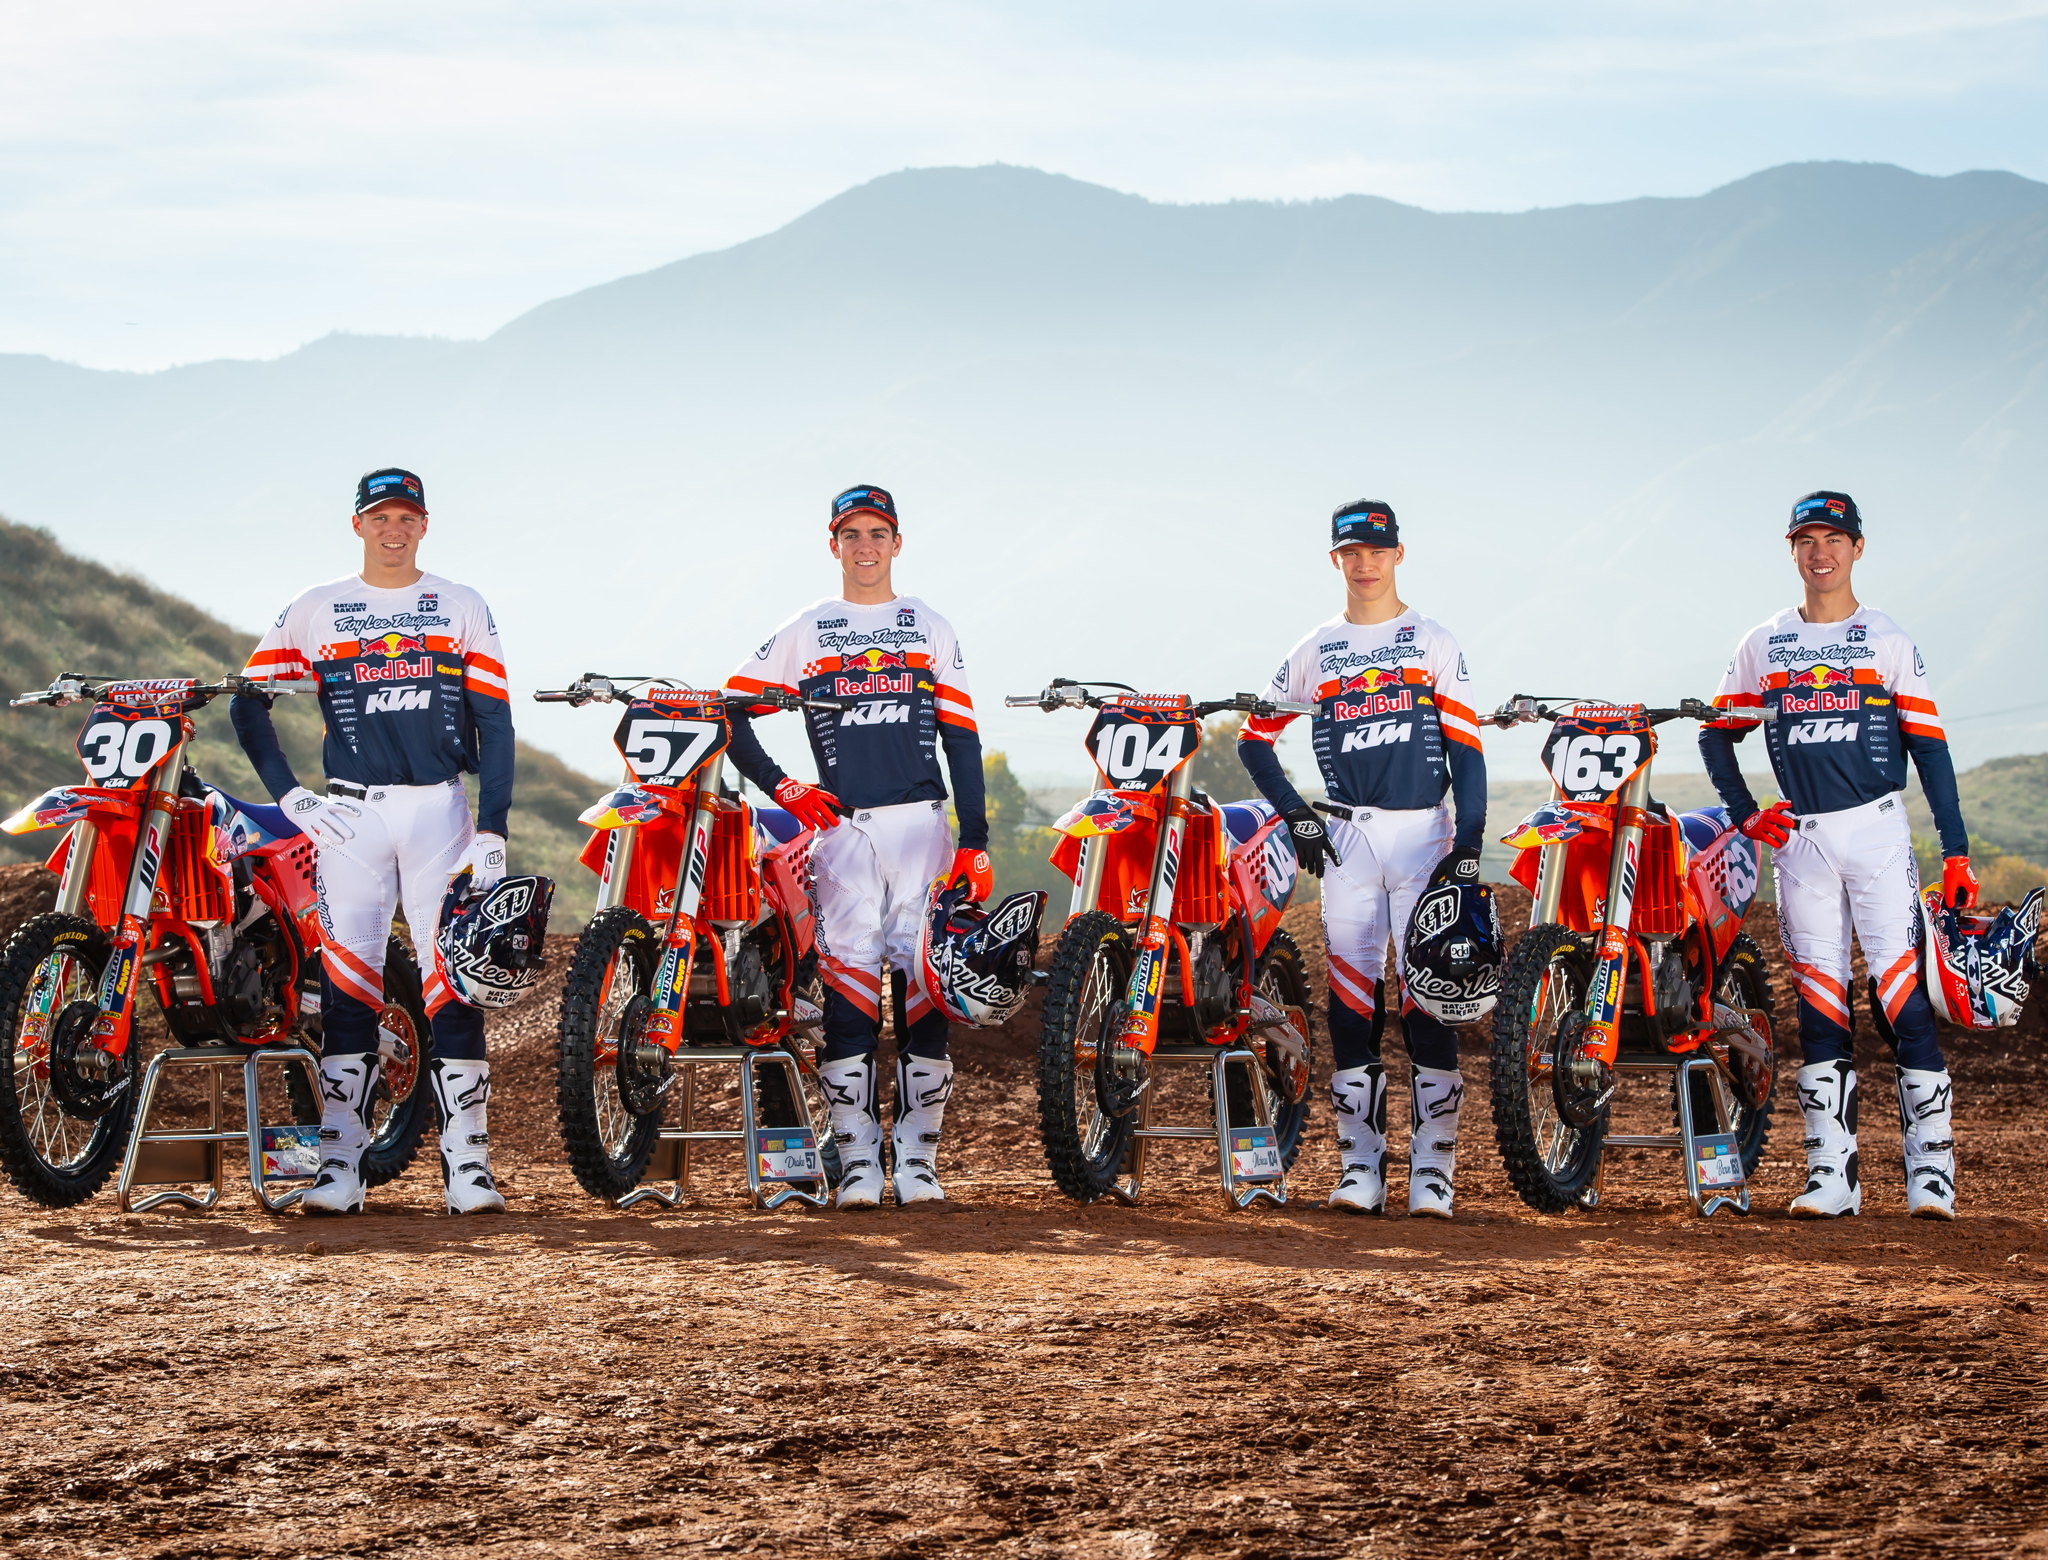 Team TLD 4 Riders